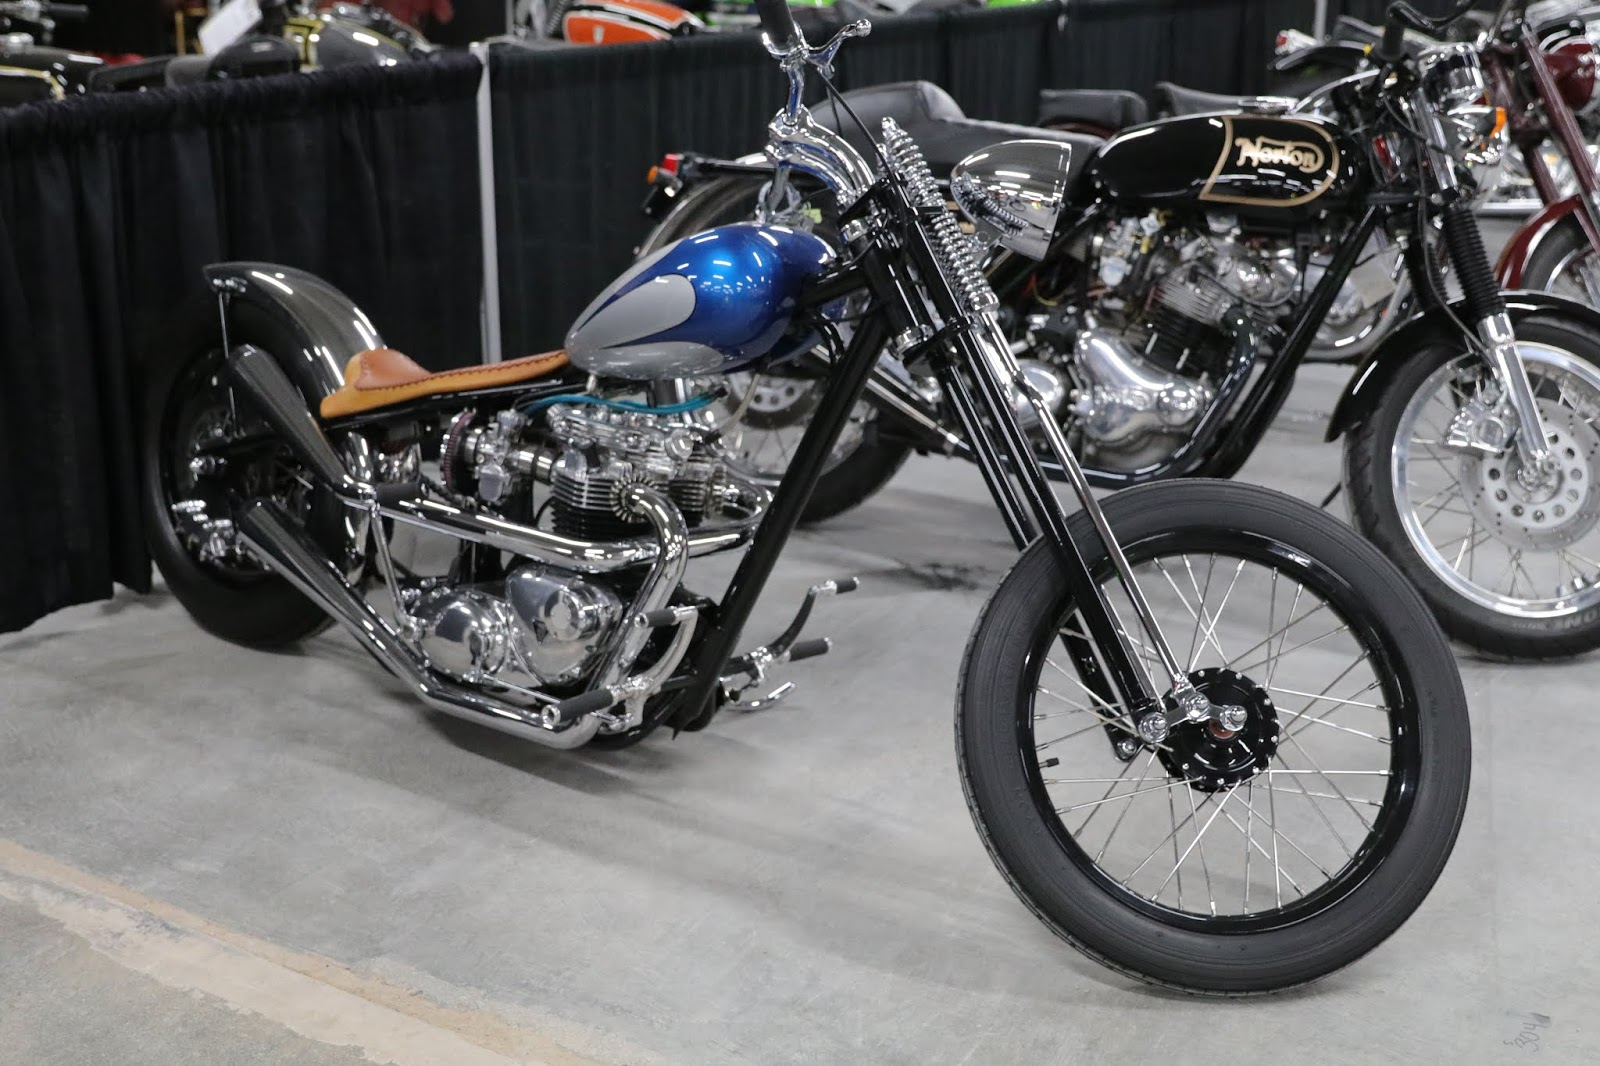 OldMotoDude: 1965 Triumph Chopper sold for $12,650 at the